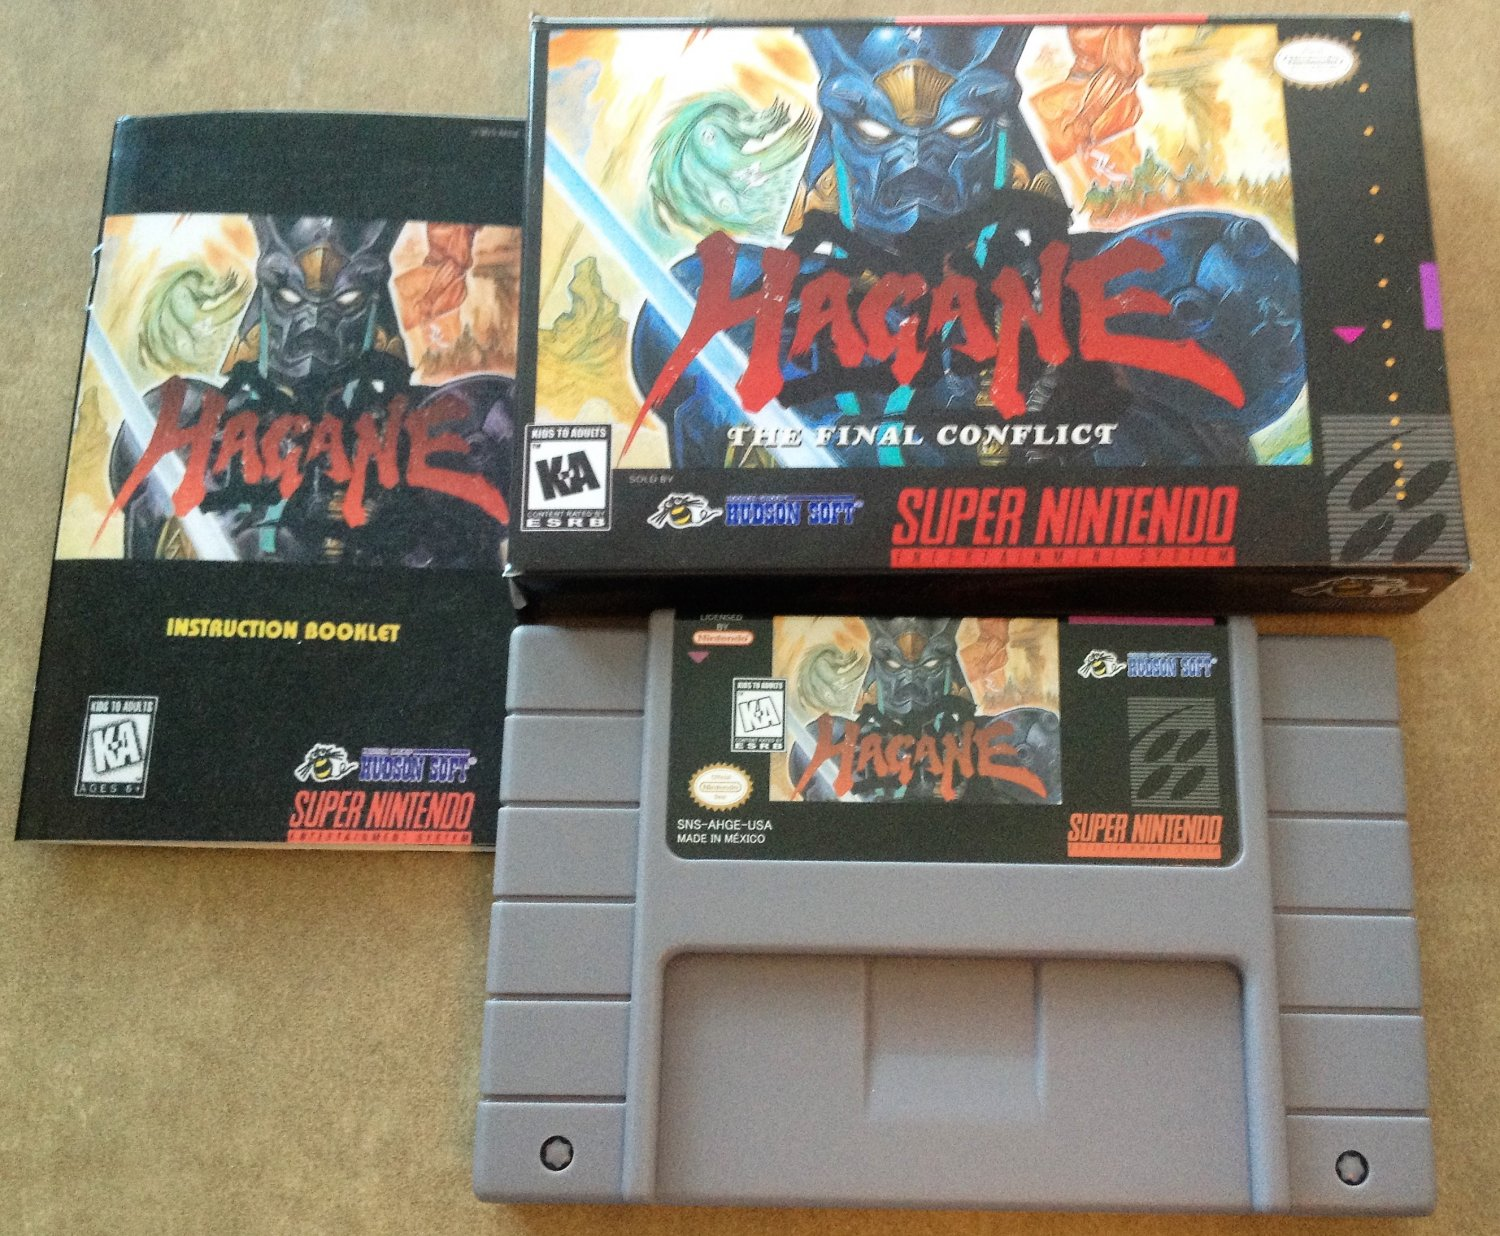 Hagane: The Final Conflict (Super Nintendo, SNES) - Repro Cart w/ Custom Mini Box and Game Manual